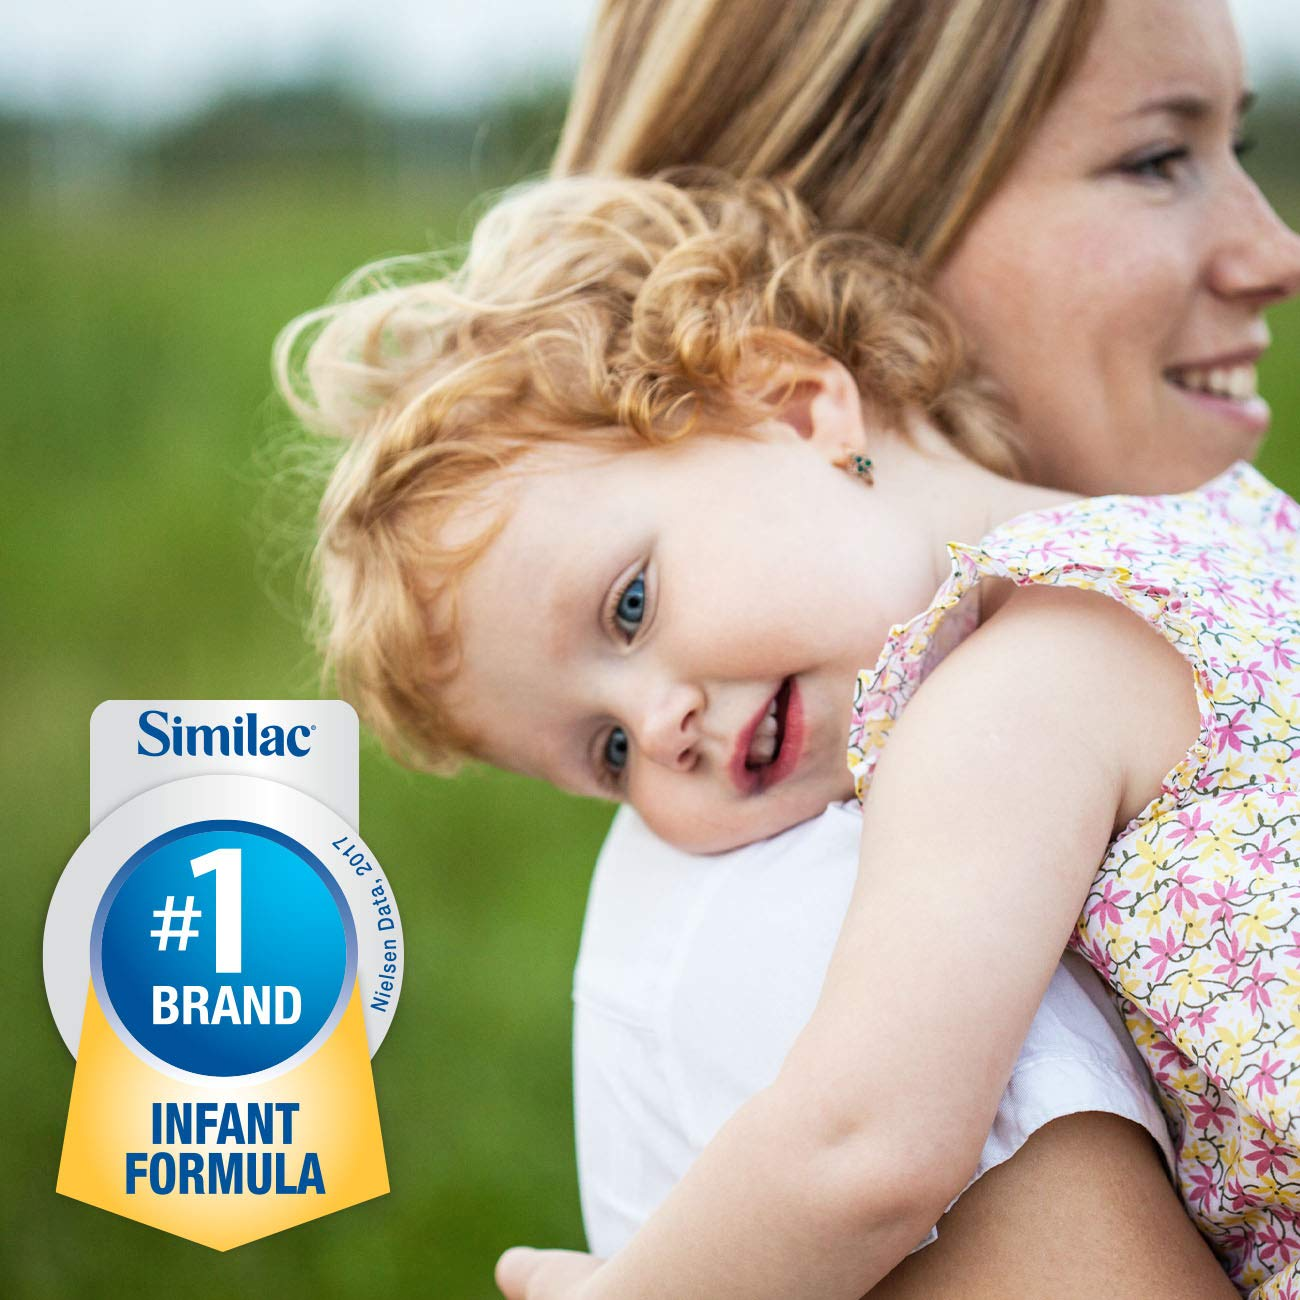 Pure Bliss by Similac Toddler Drink with Probiotics, Starts with Fresh Milk from Grass-Fed Cows, Non-GMO Toddler Formula, 31.8 ounces by Similac (Image #9)